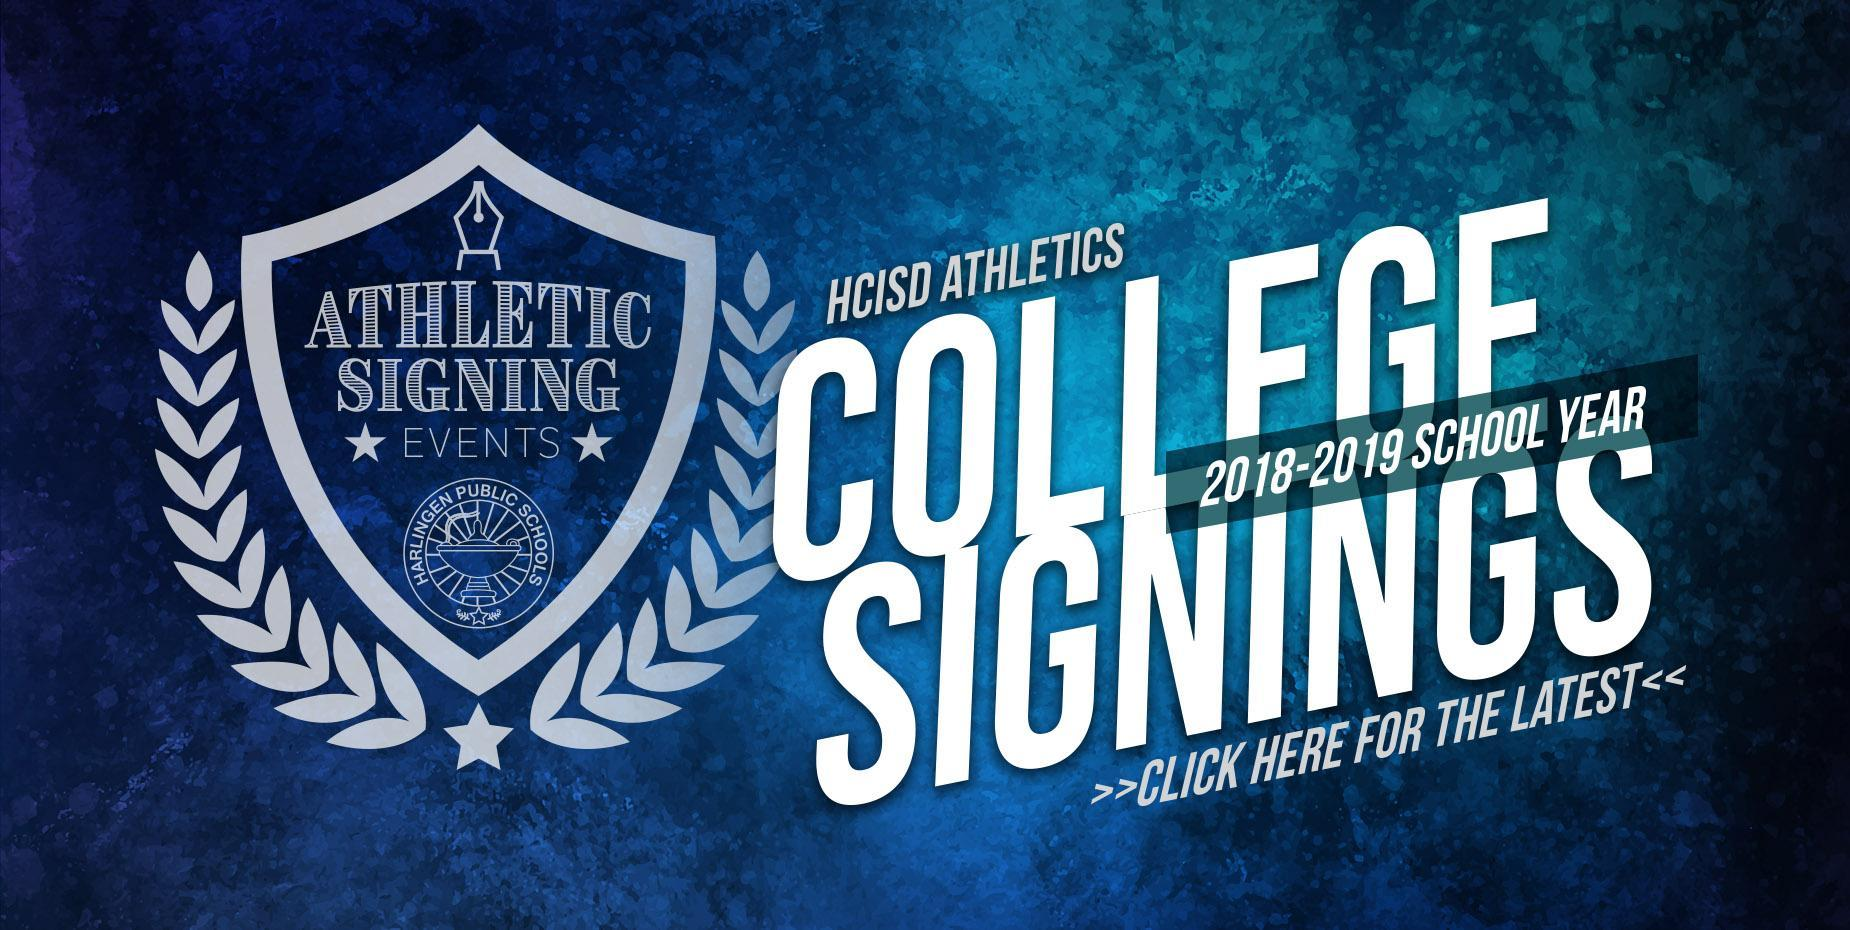 HCISD Athletics 2018-2019 signings